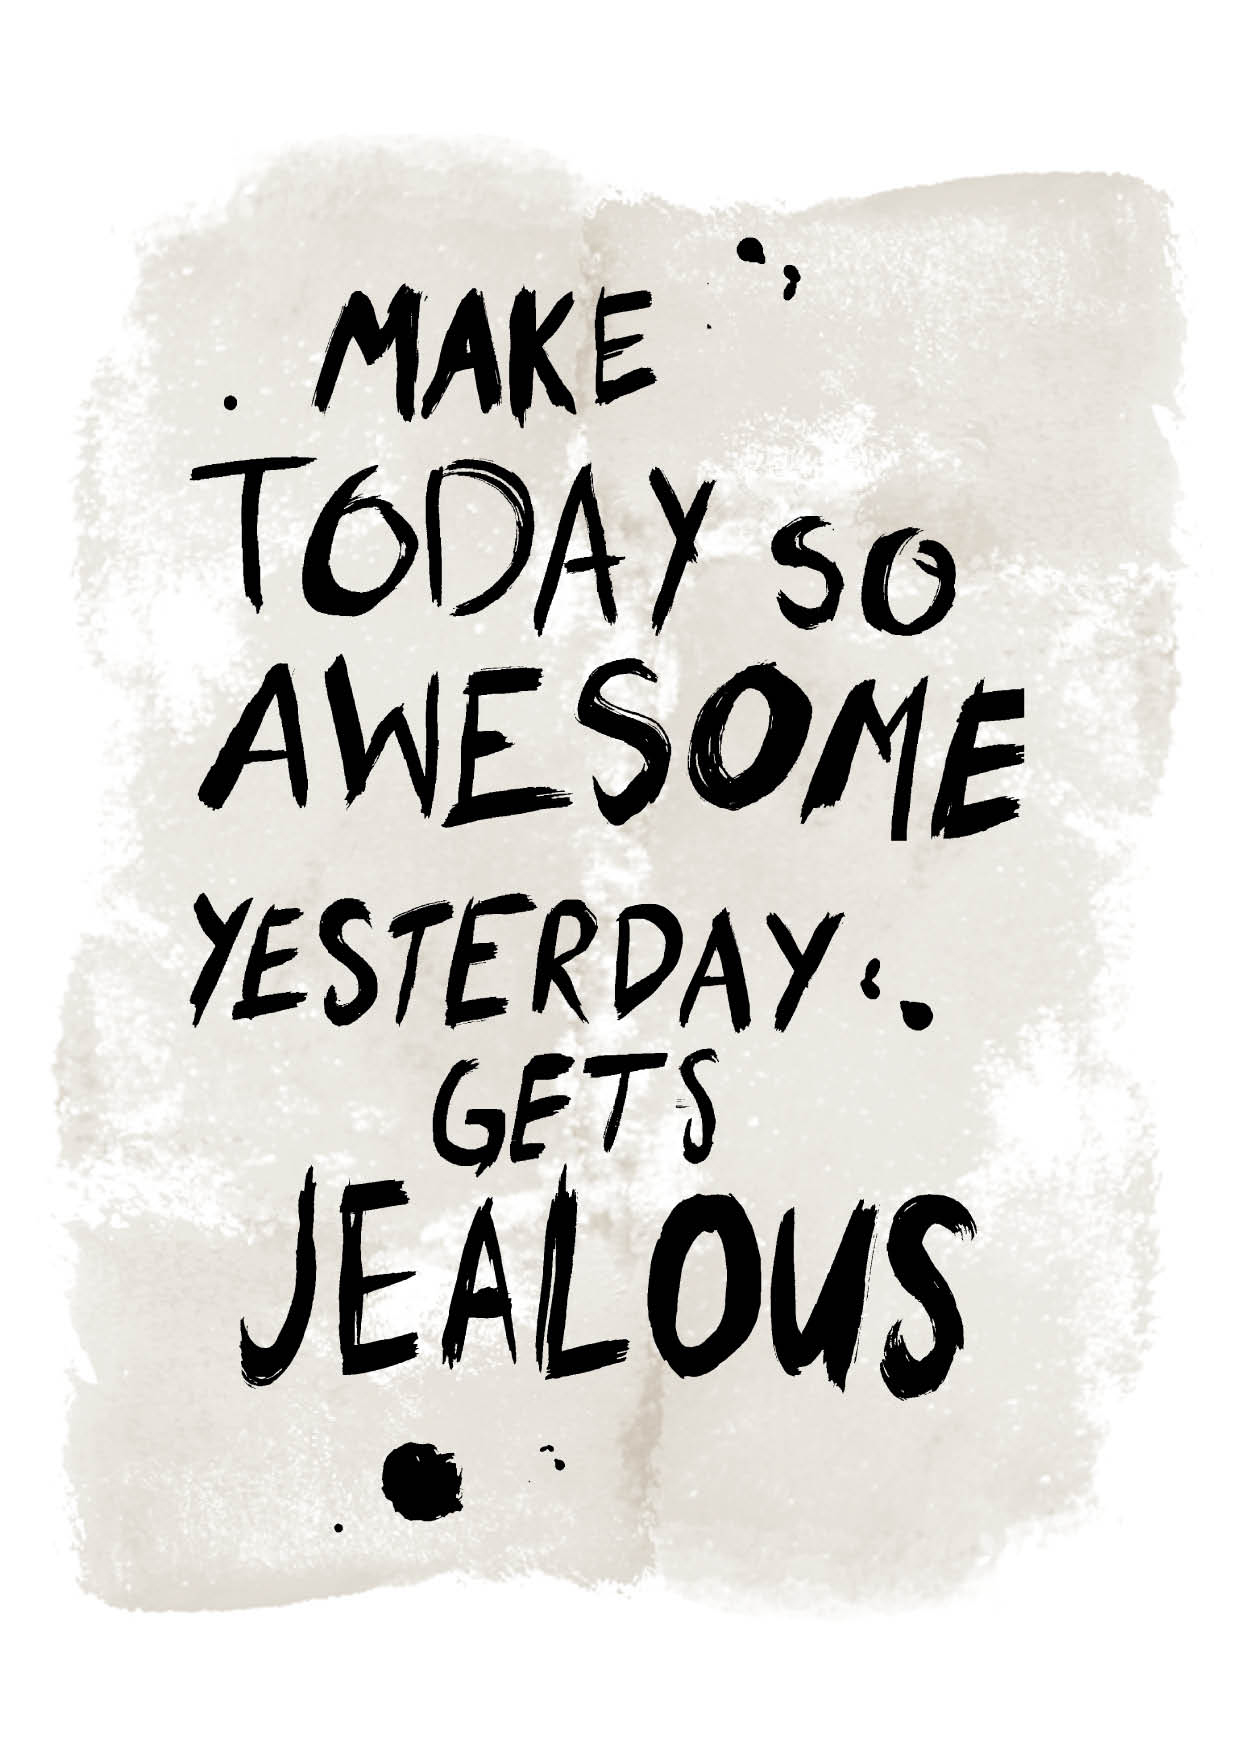 Make today so awesome yesterday gets jealous - athello voor Flair quote